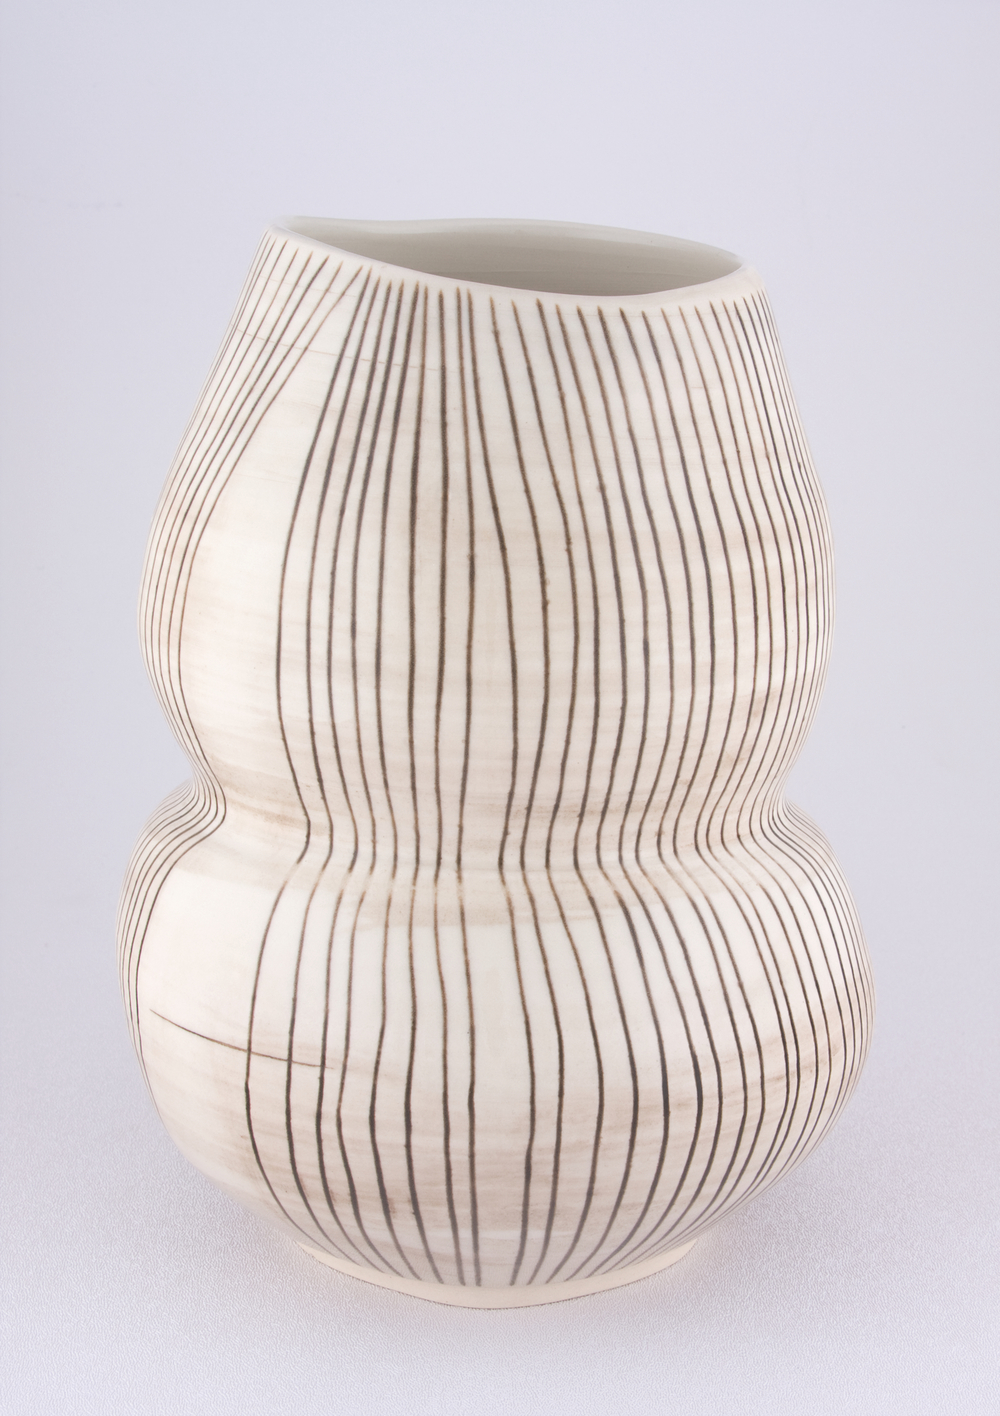 Shio Kusaka  Untitled (double black stripe)  2009 Porcelain 10h x 7 ¾w x 7 ¾d in SK043